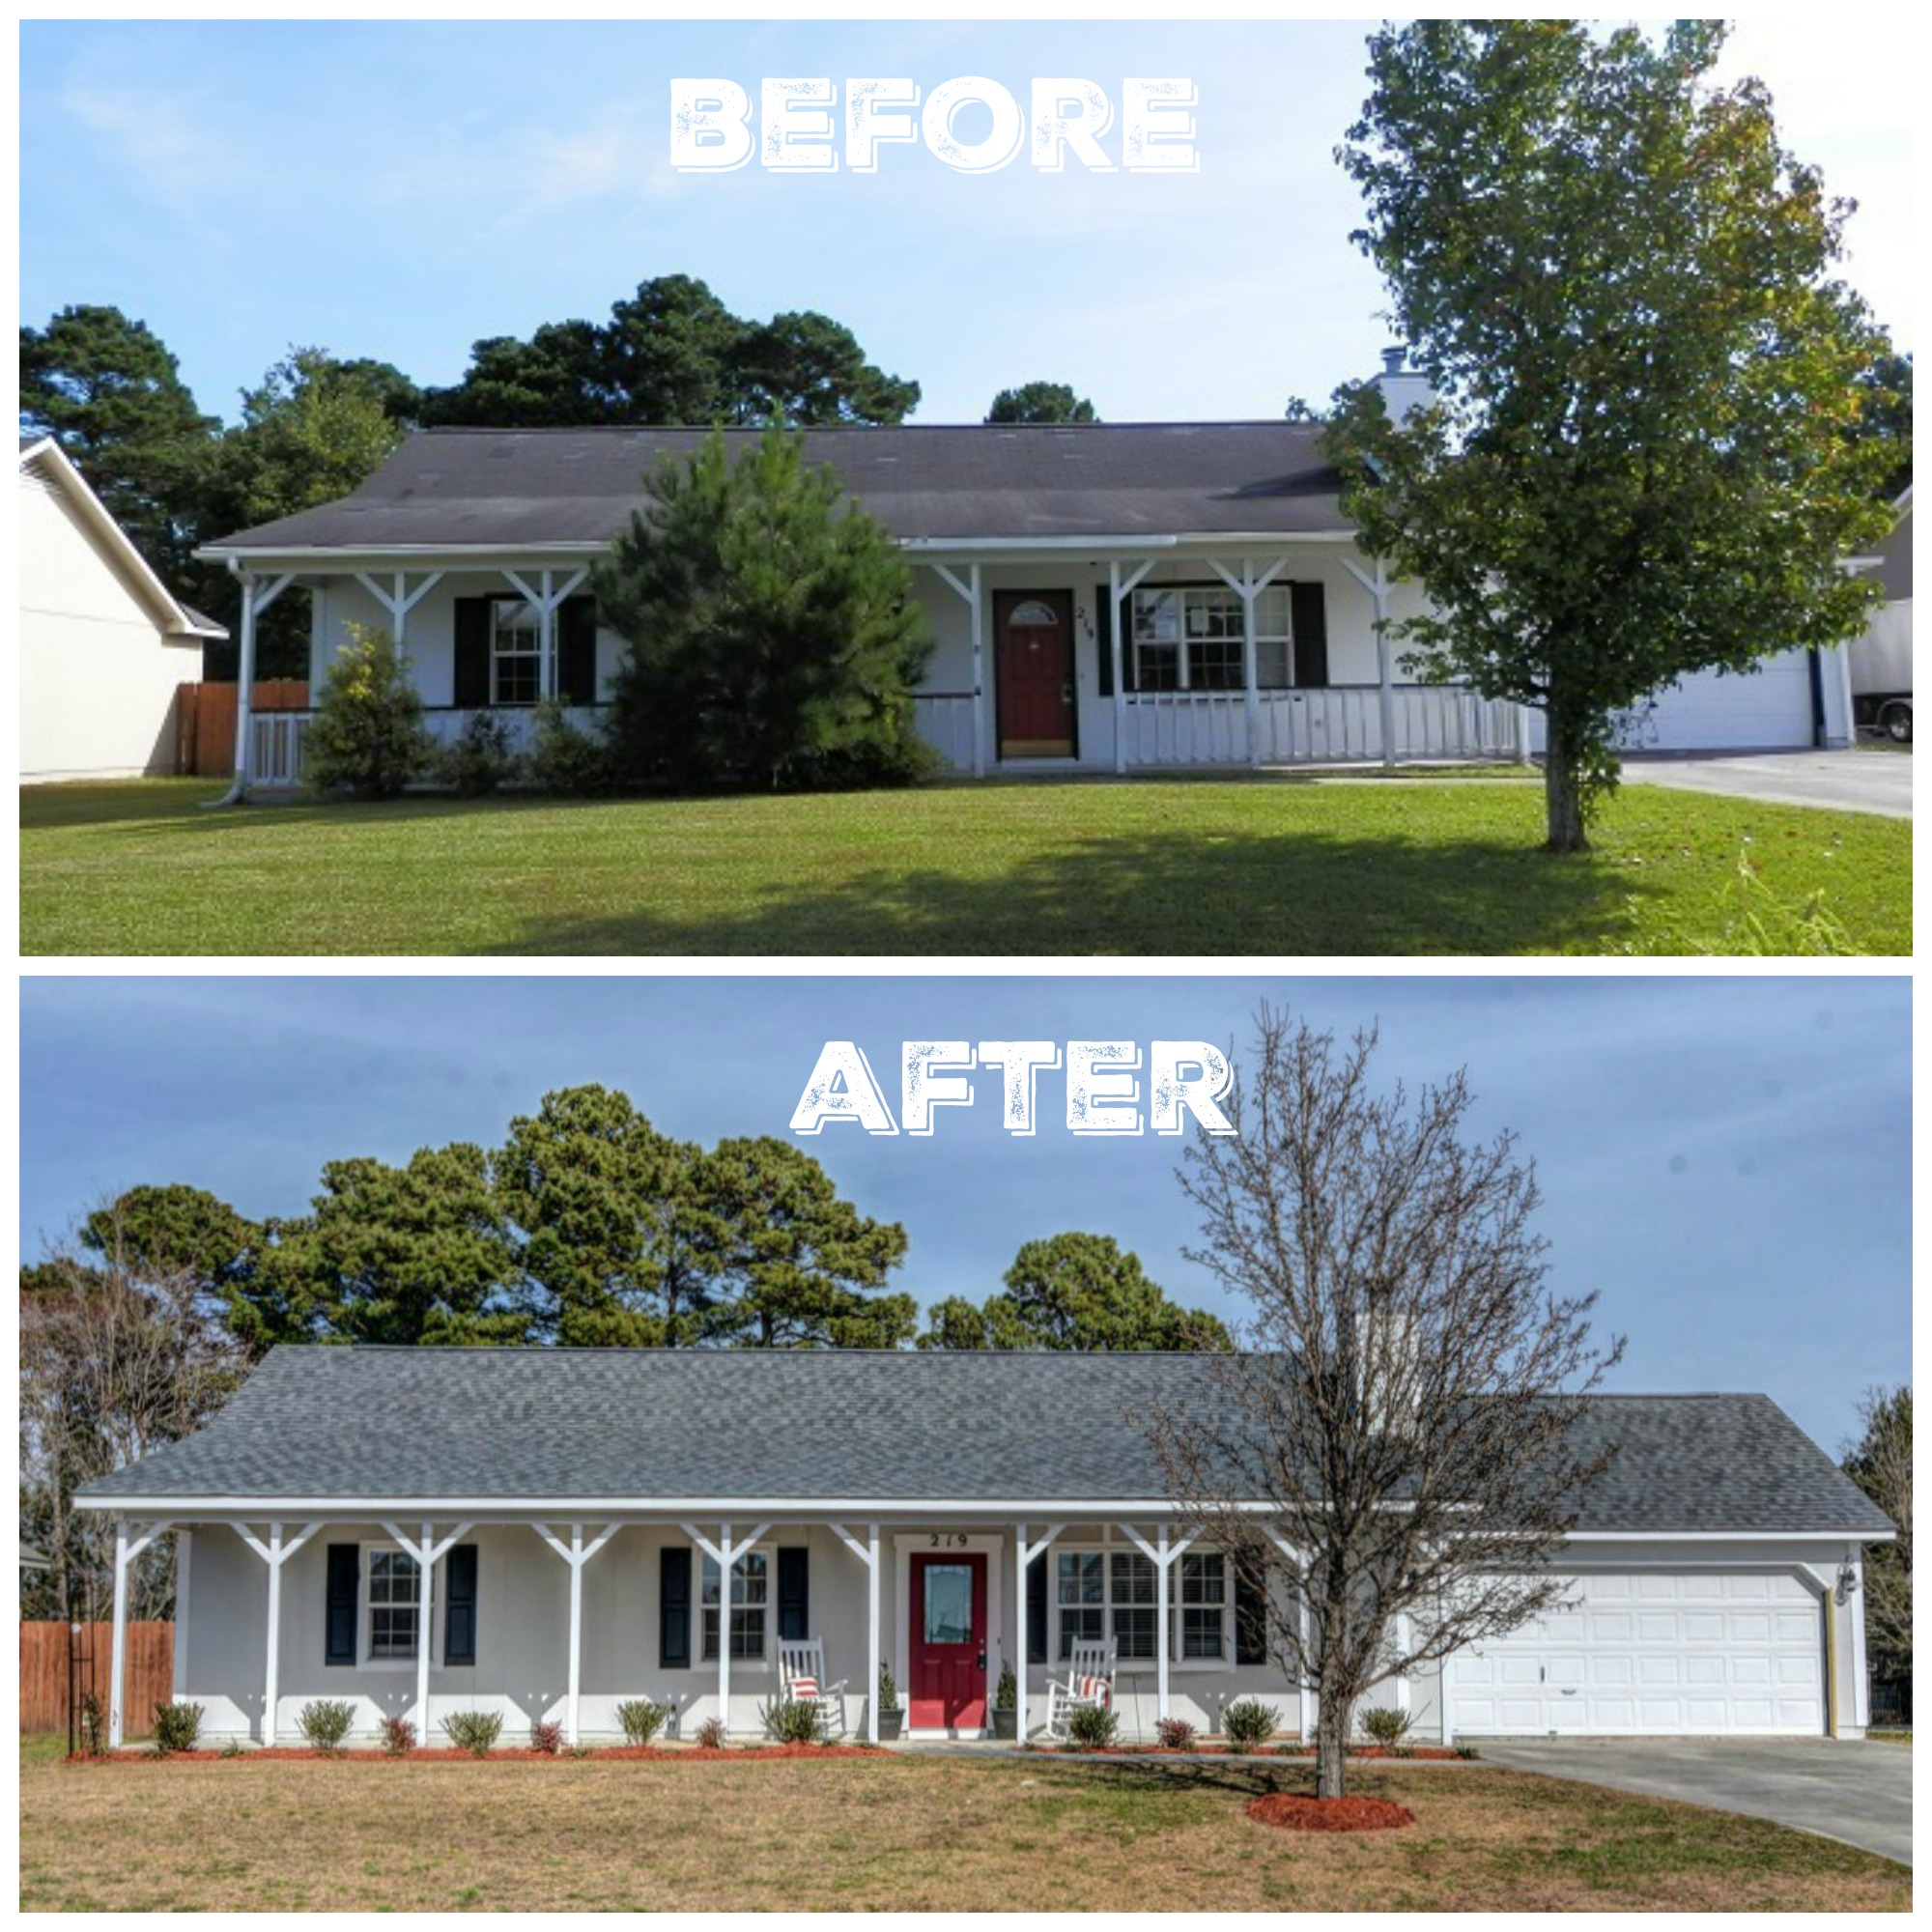 Renovated Farmhouse Before And After Before And After Fixer Upper The Everyday Home